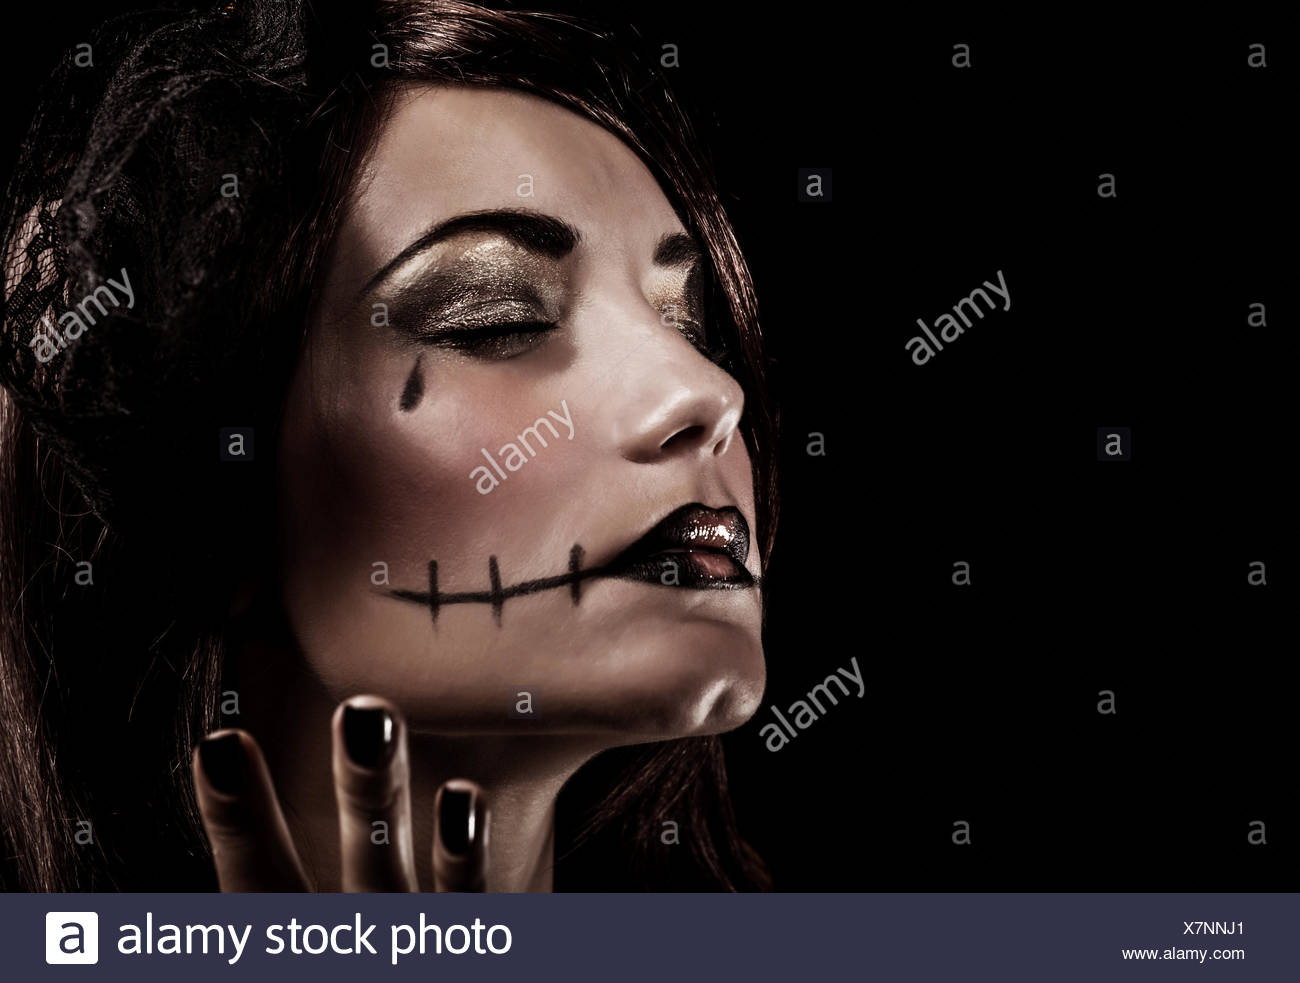 evil witch on black background, closeup portrait of young beautiful